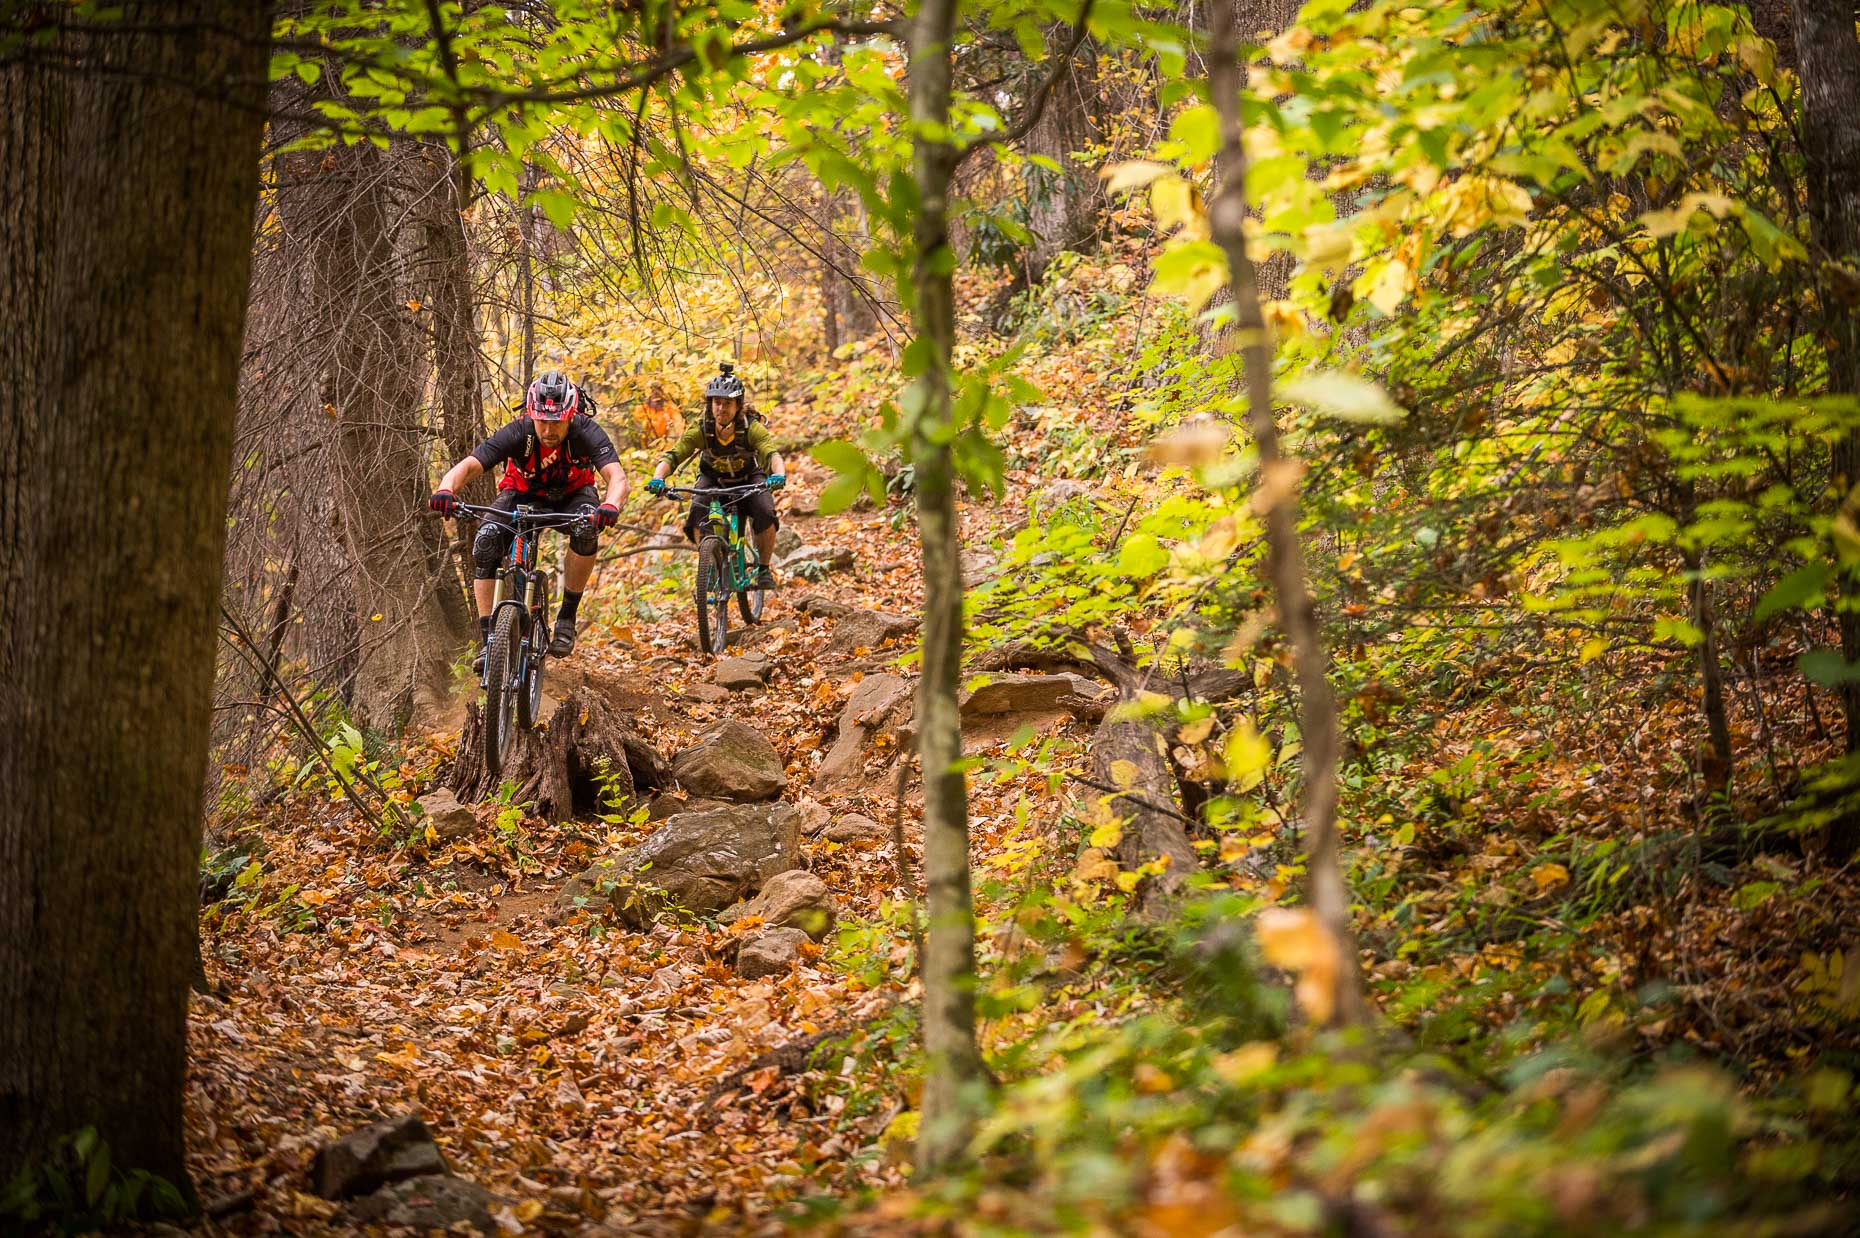 aaron-ingrao-farlows-gap-mountain-bike-pisgah-forest-jeff-lenosky